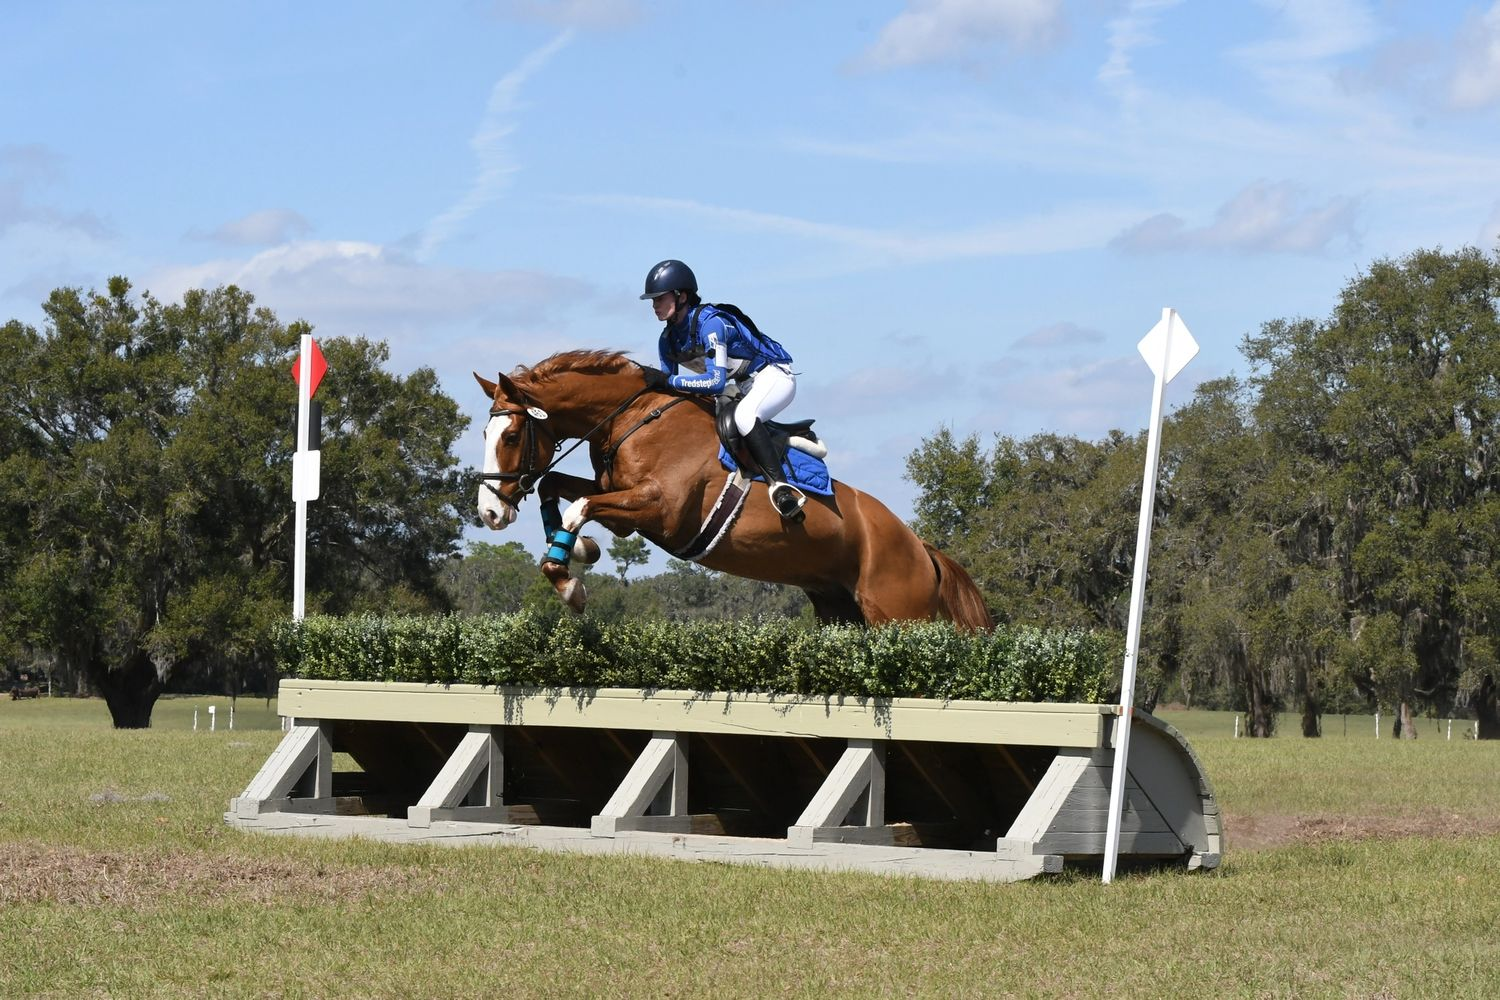 Leanne training a horse at an event in Orlando, Florida.